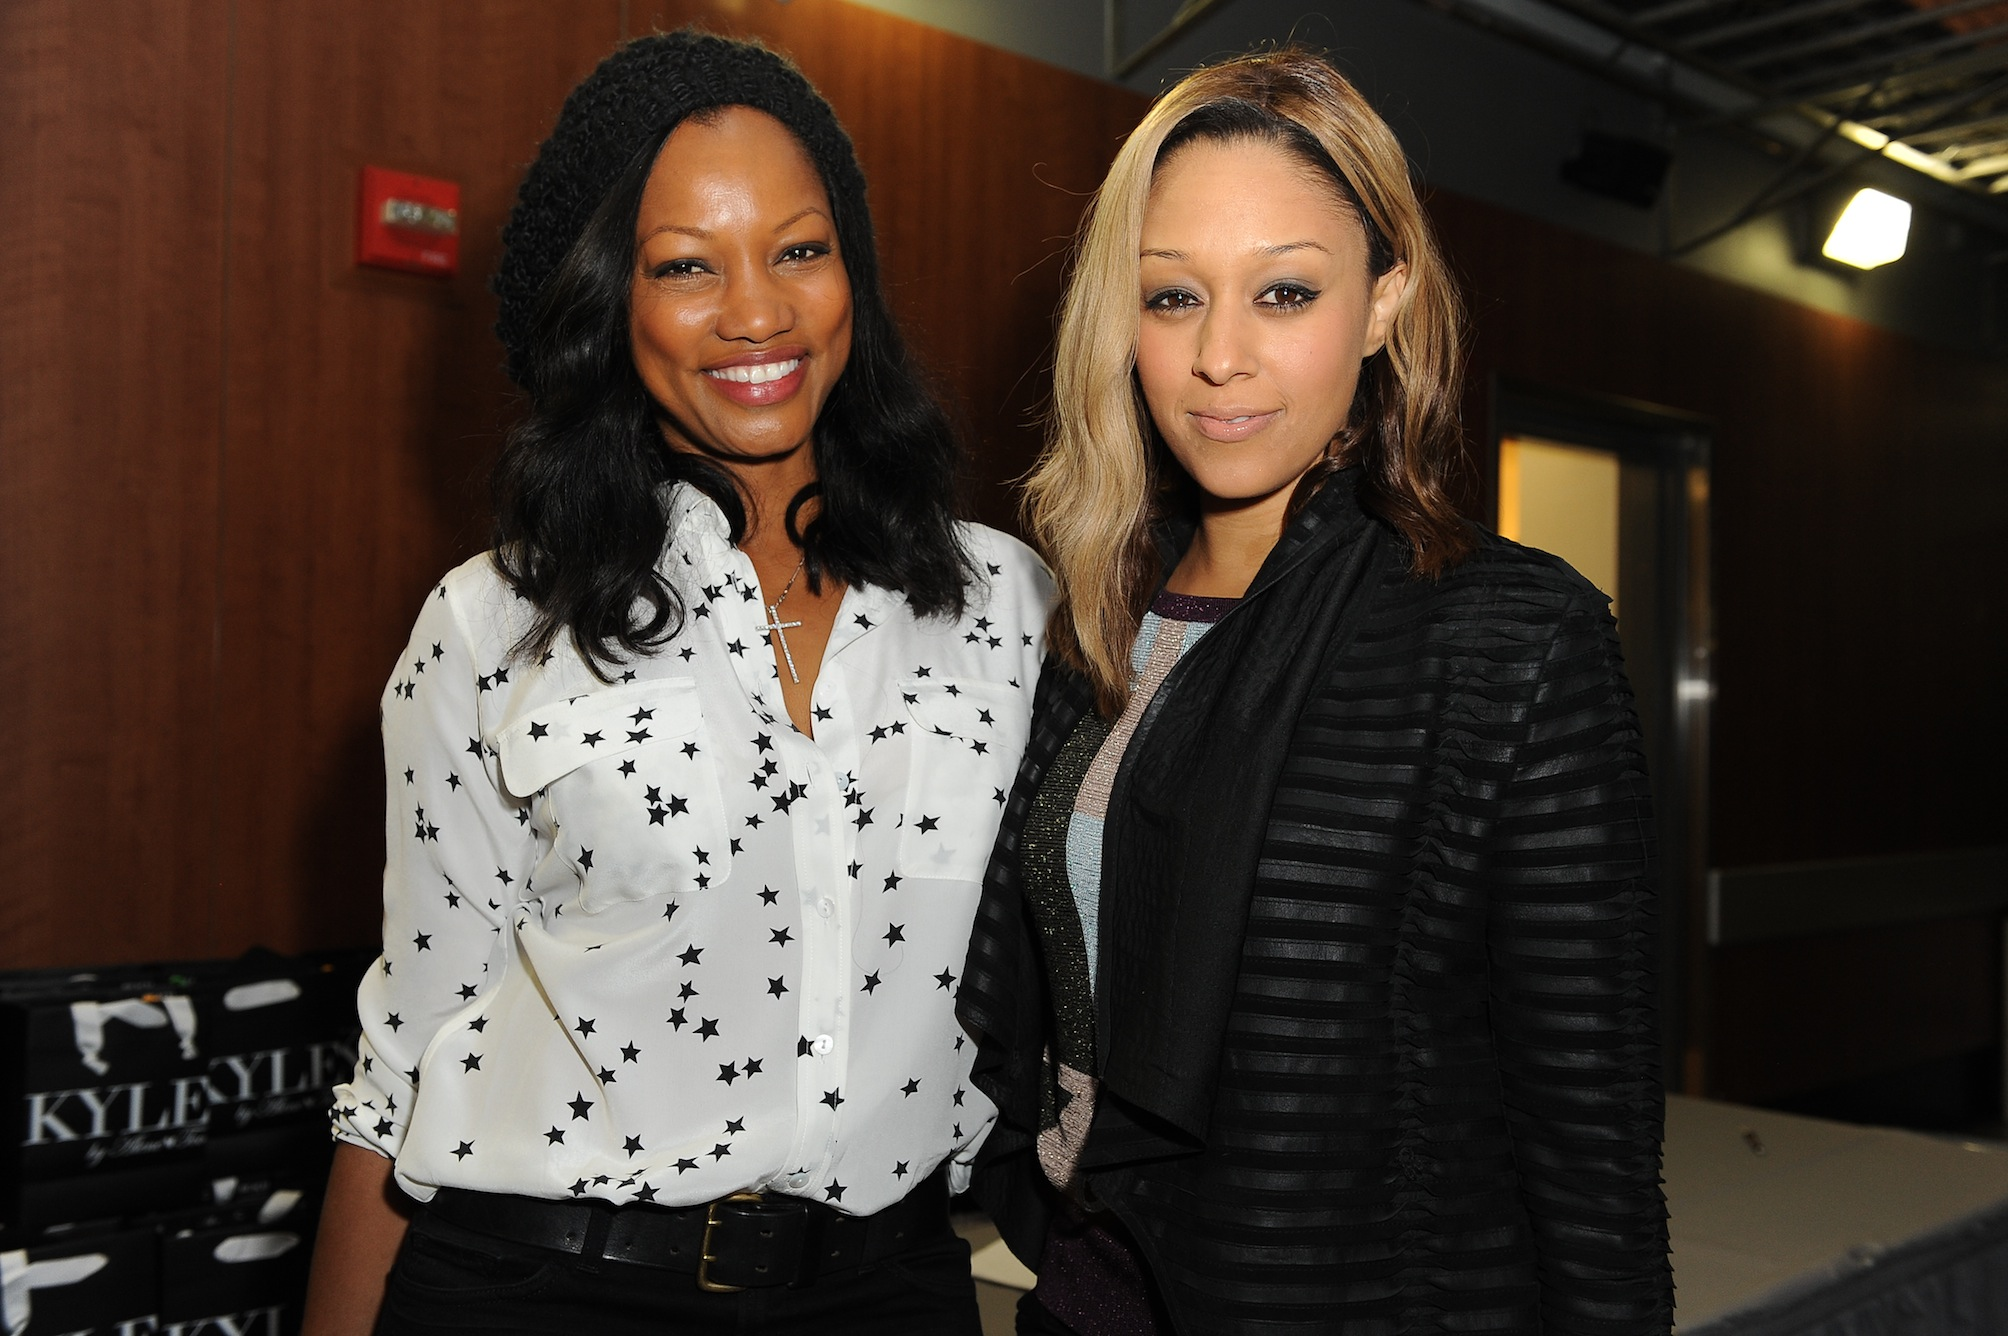 Garcelle Beauvais and Tia Mowry at Kyle by Alene Too Lakers Event